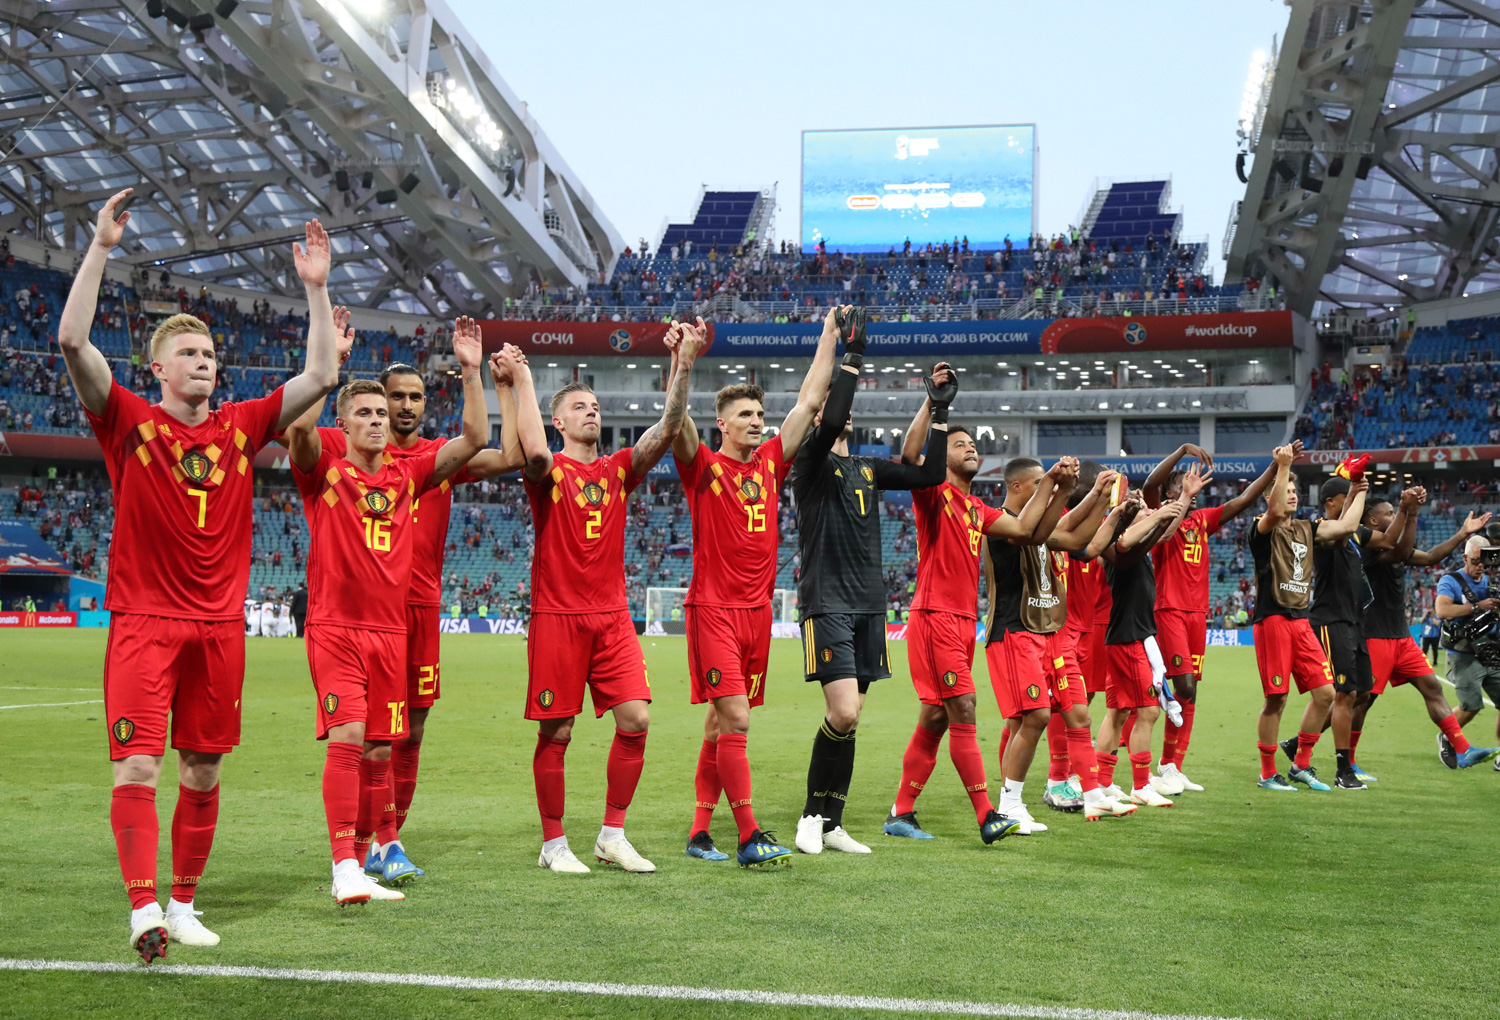 "<div class=""meta image-caption""><div class=""origin-logo origin-image none""><span>none</span></div><span class=""caption-text"">Belgium's team celebrates after winning the group G match between Belgium and Panama at the 2018 soccer World Cup (Matthias Schrader/AP)</span></div>"